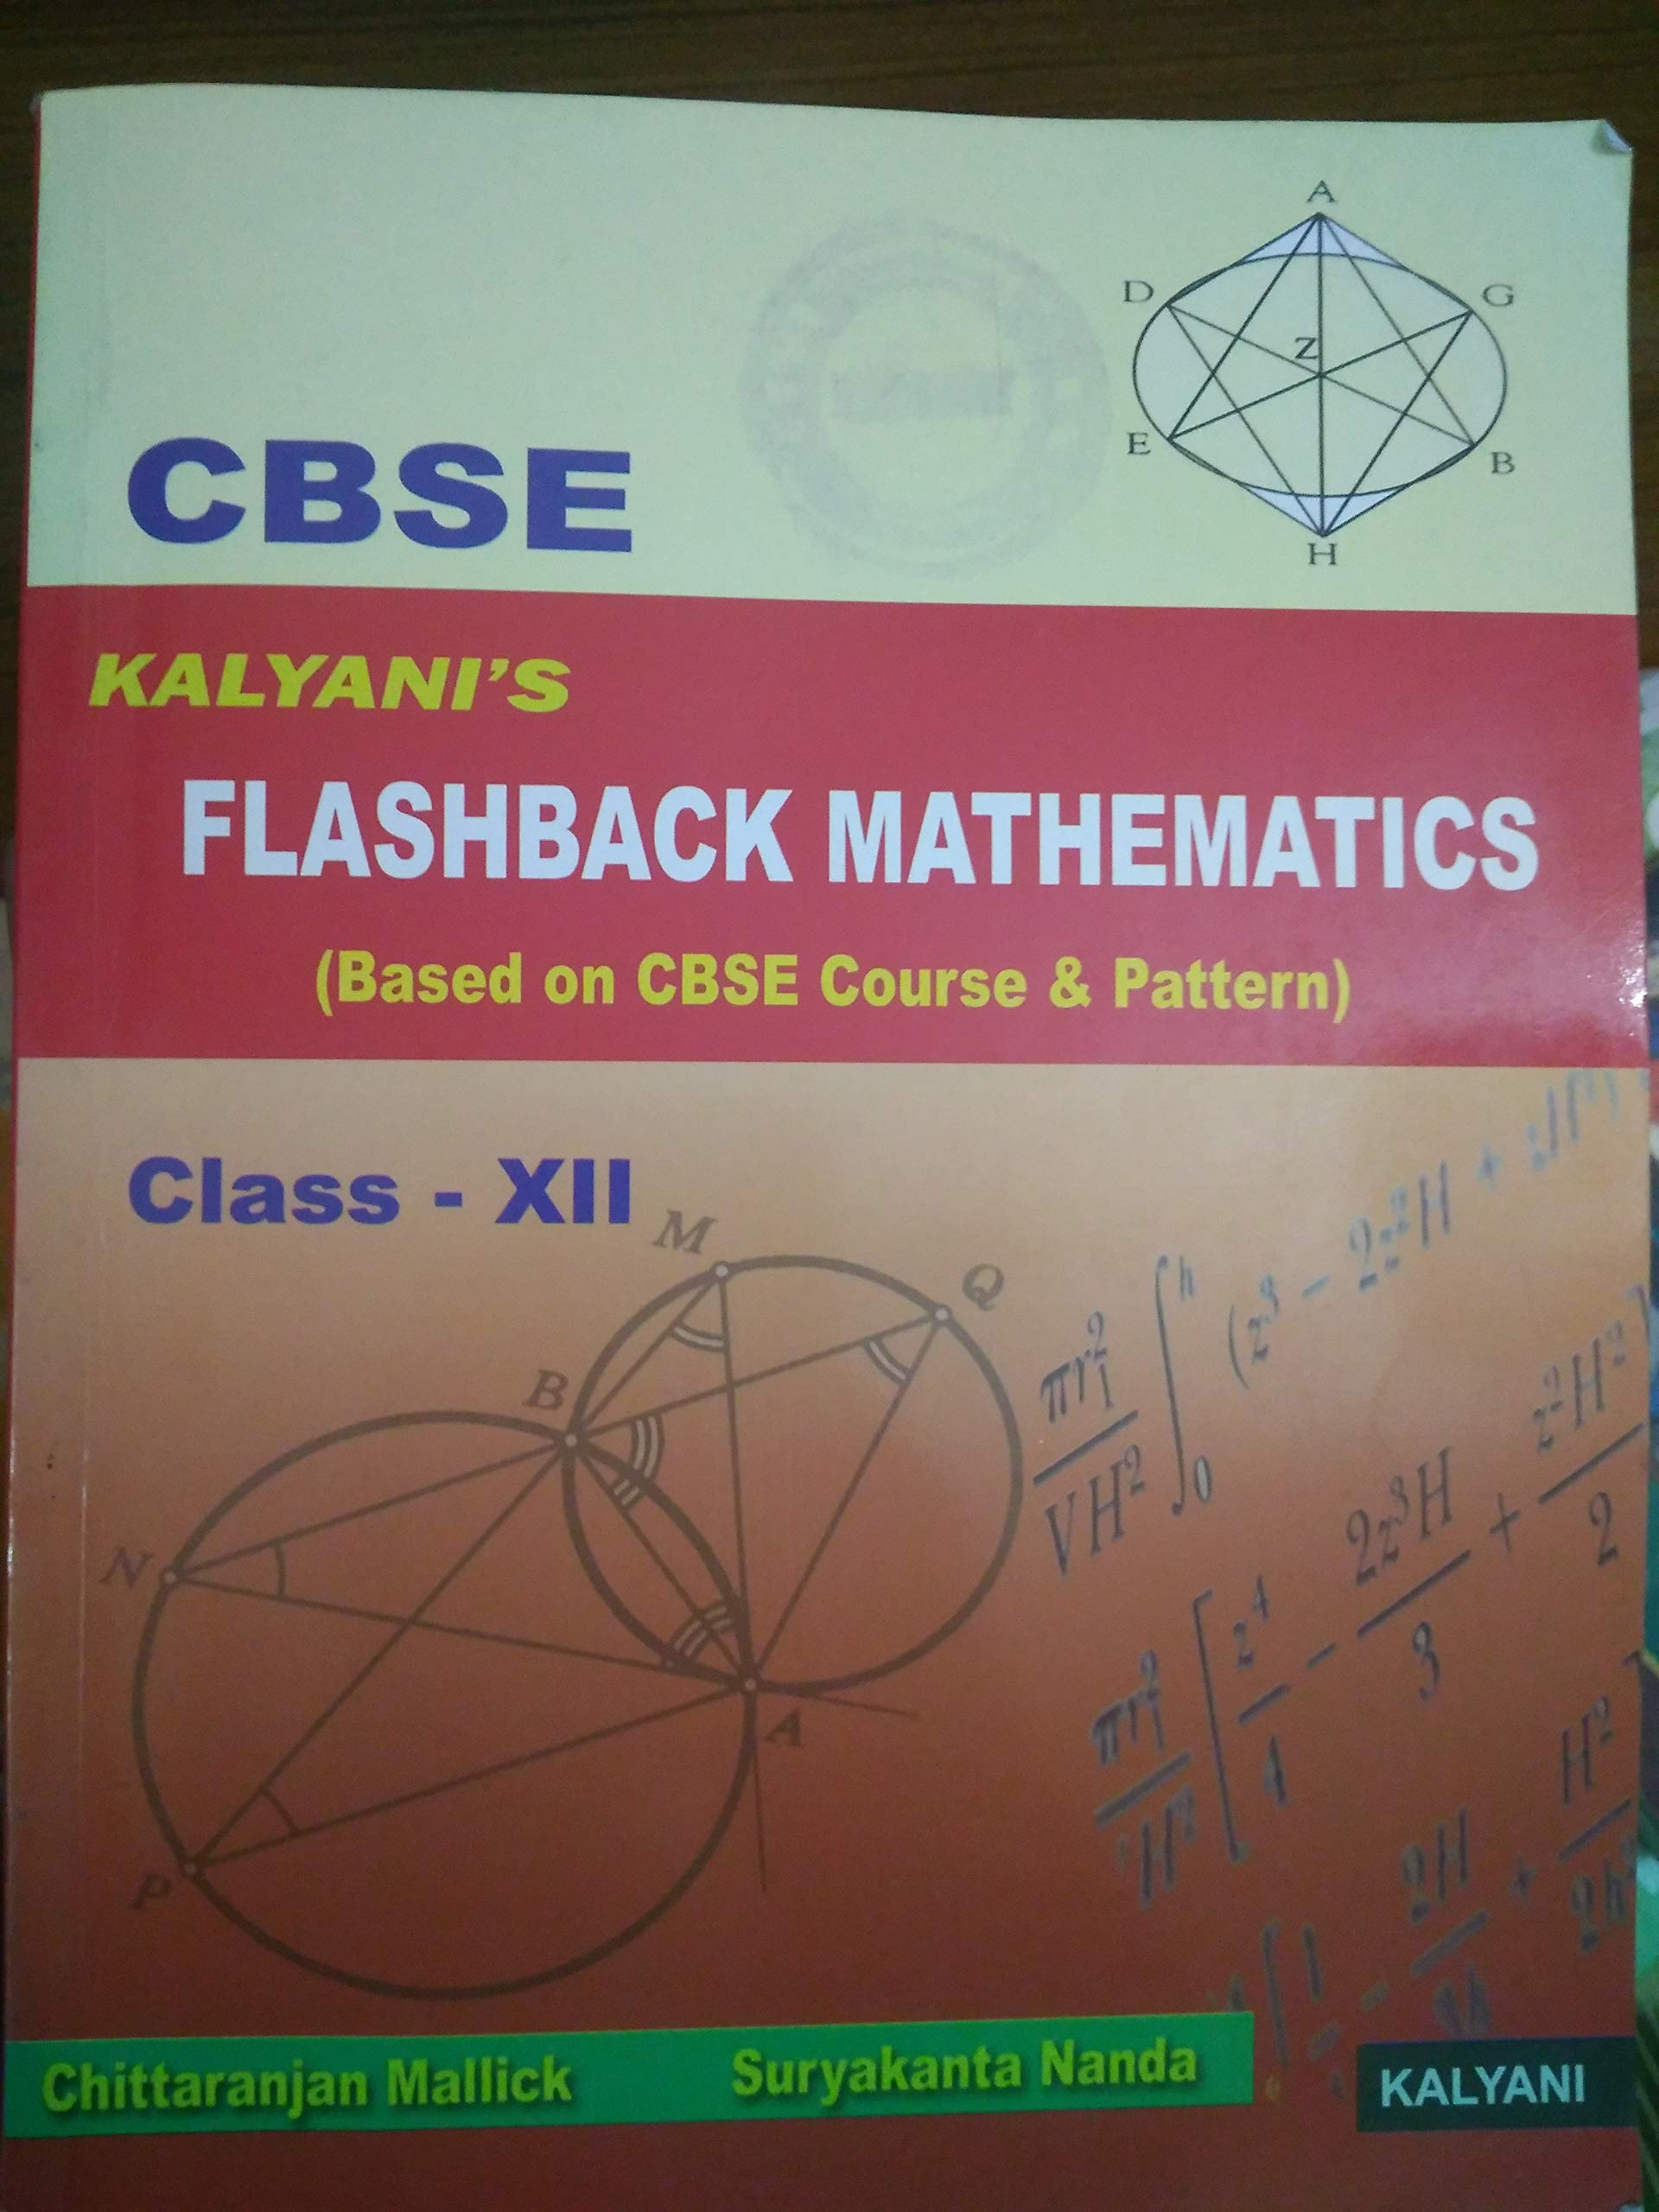 Cbse Kalyanis Flash Back Mathematics Class 12 Flashback Wiring Diagram Chittaranjan Mallick Suryakanta Nanda Books